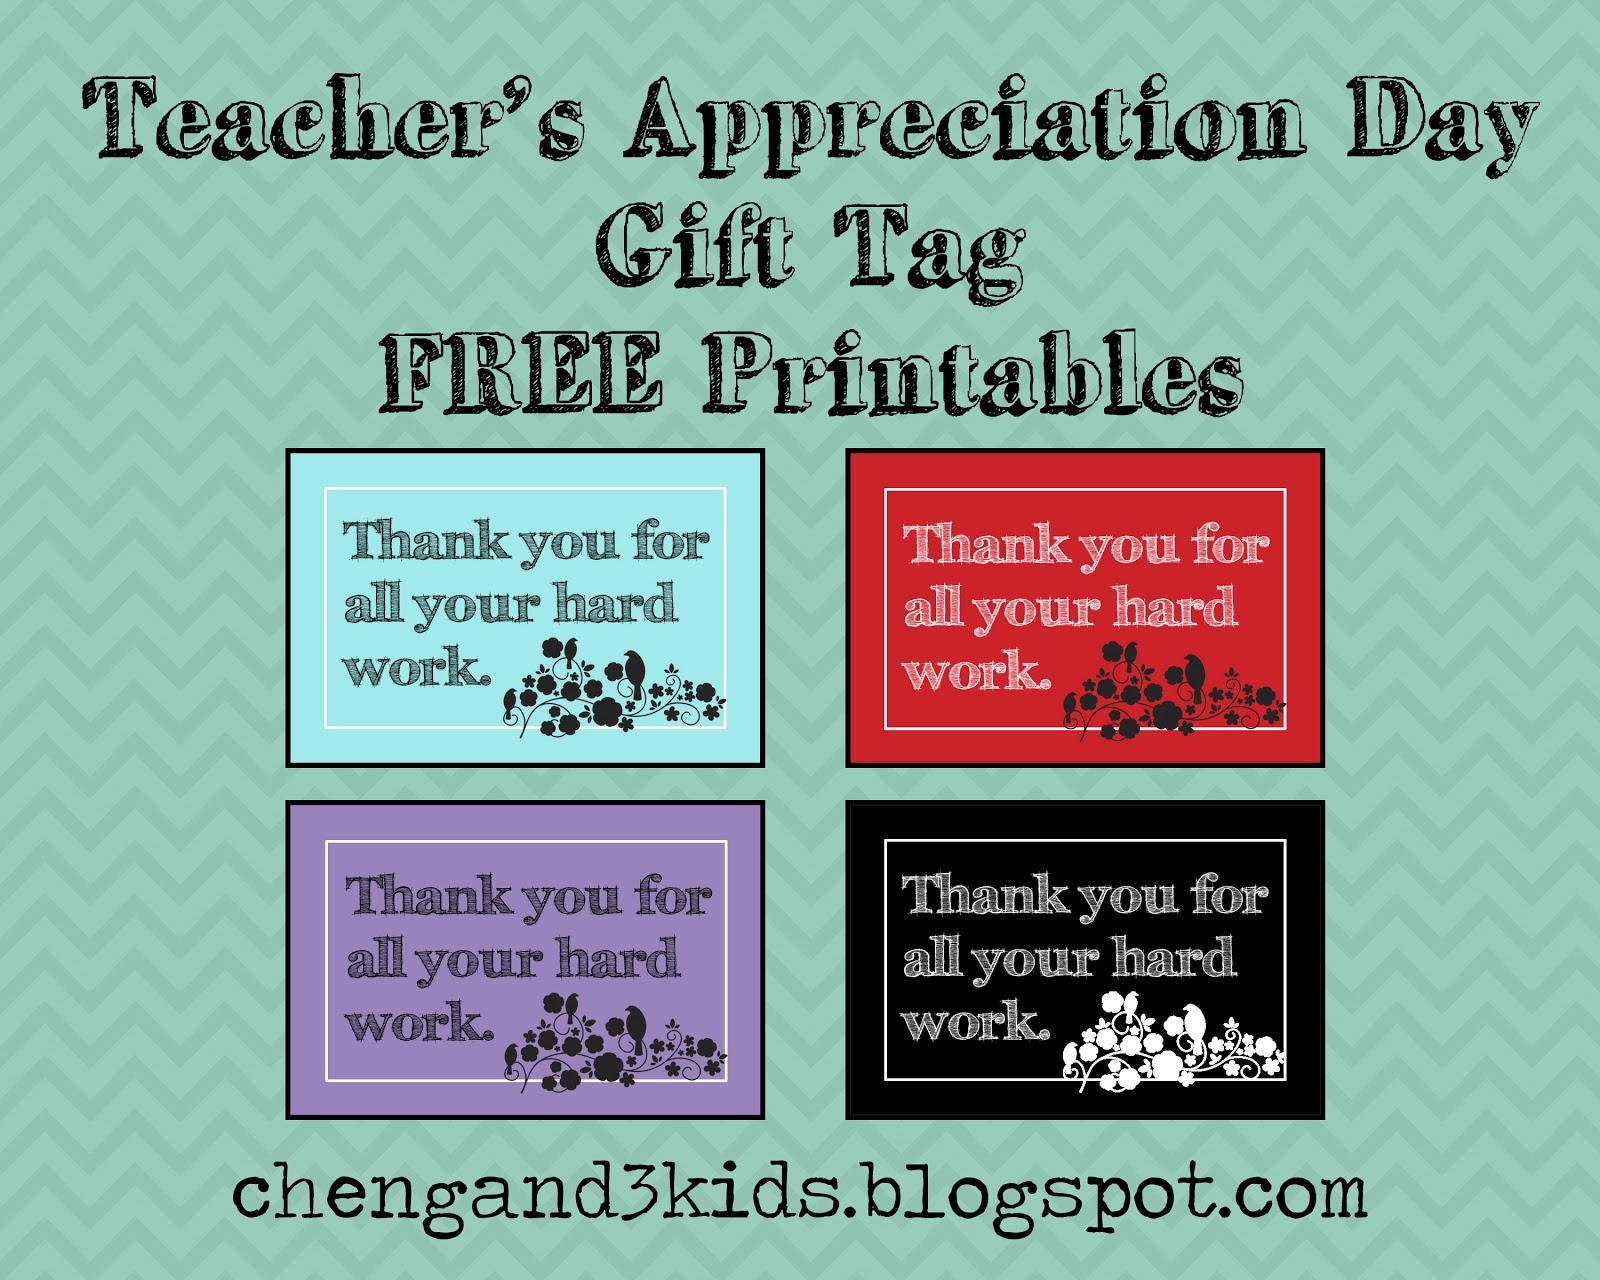 Brand new Cheng and 3 Kids: Teacher's Appreciation Day Gift Tag FREE Printable XM19